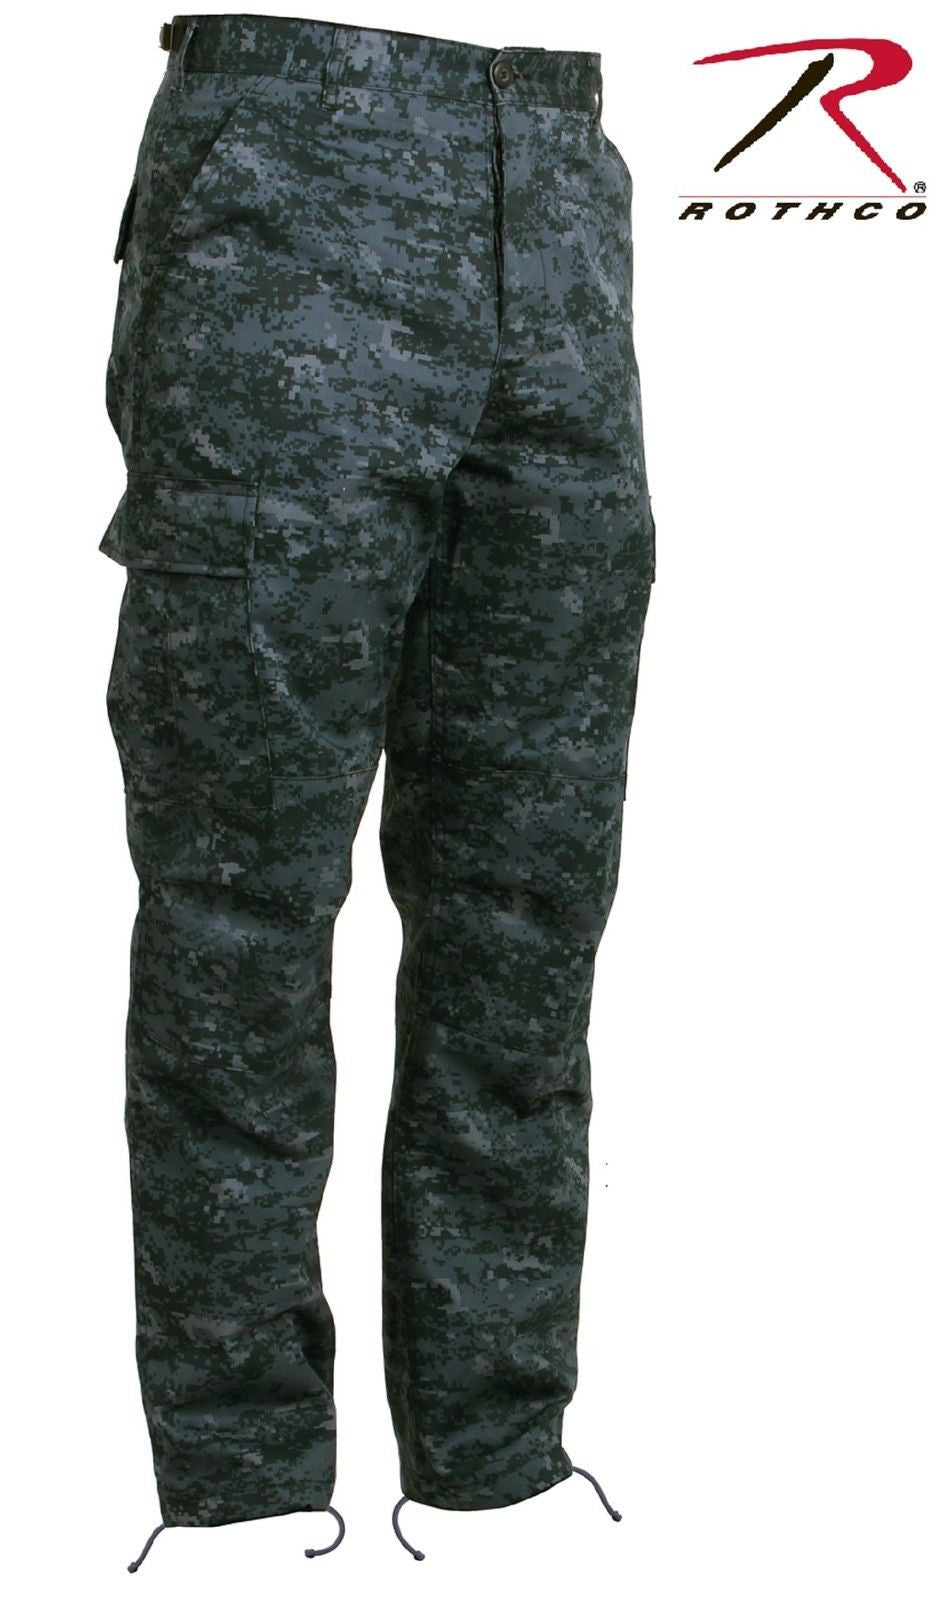 Midnight Blue Digital Camouflage BDU Cargo Pant - Mens Military Style Camo  Pants 9806264b106